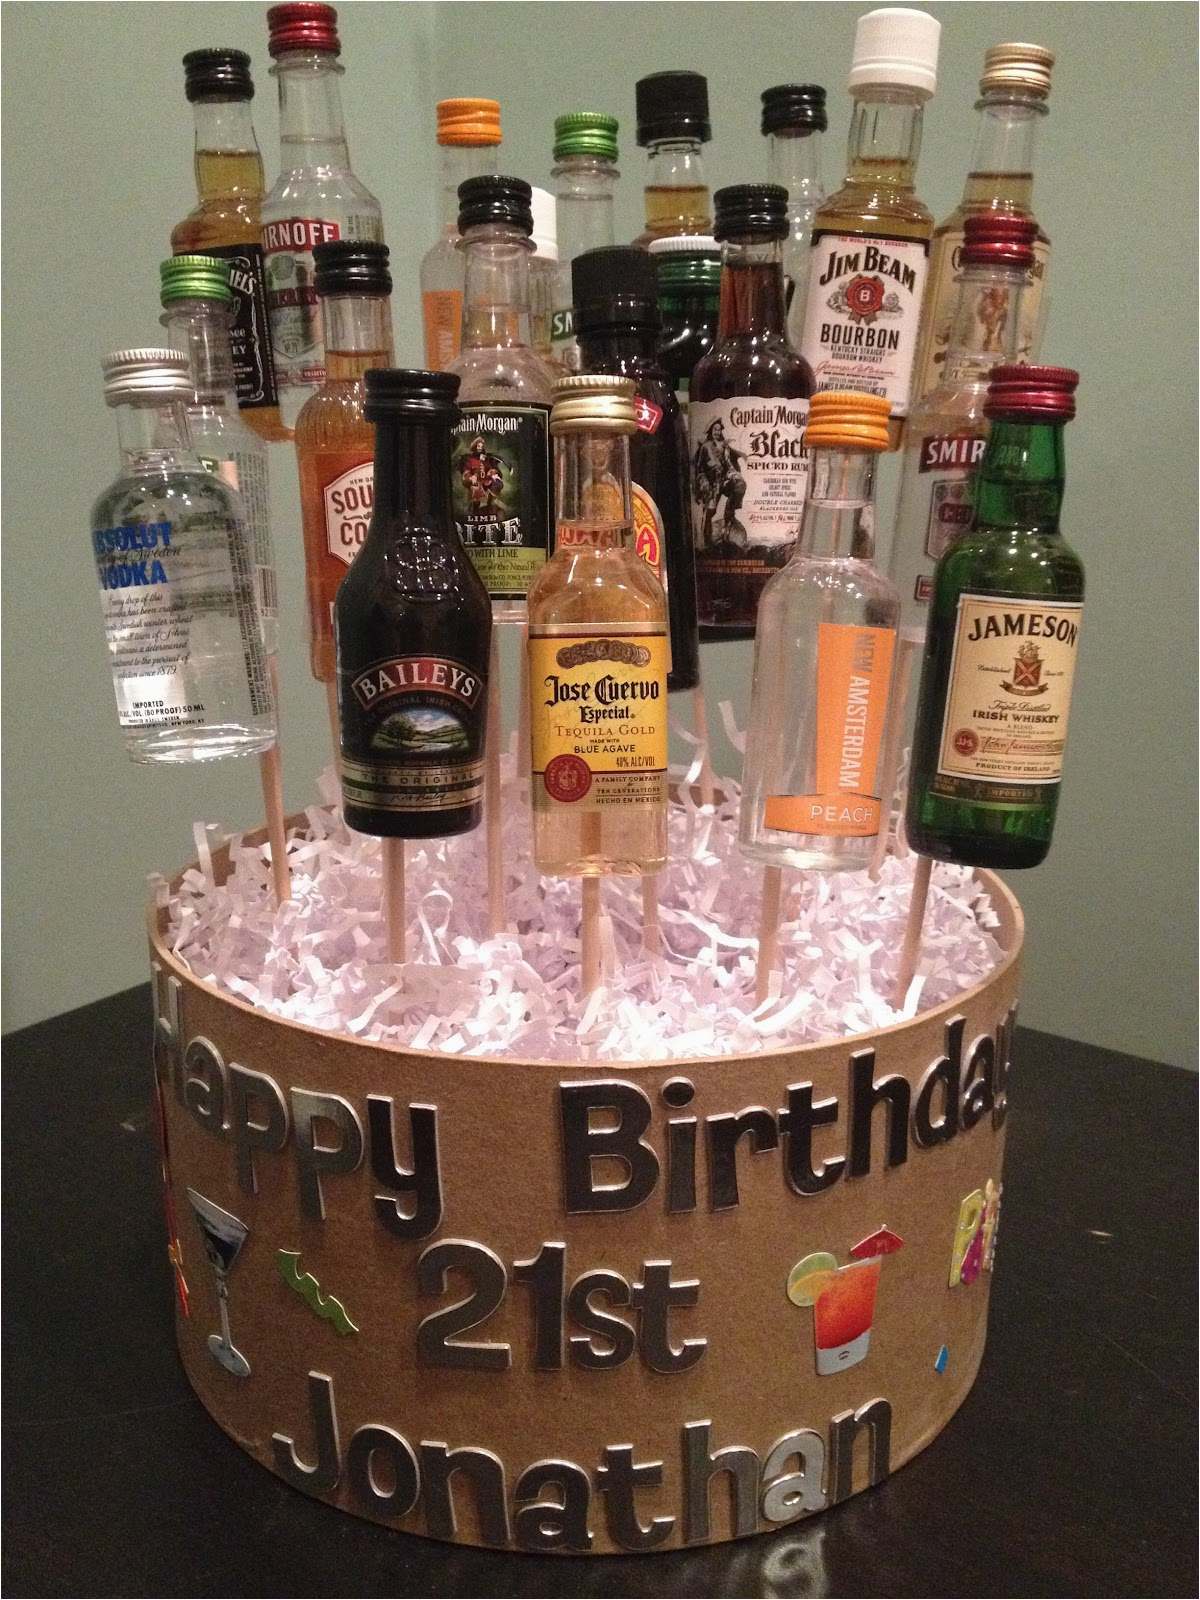 21st Birthday Gift Ideas For Her Australia 93 Party